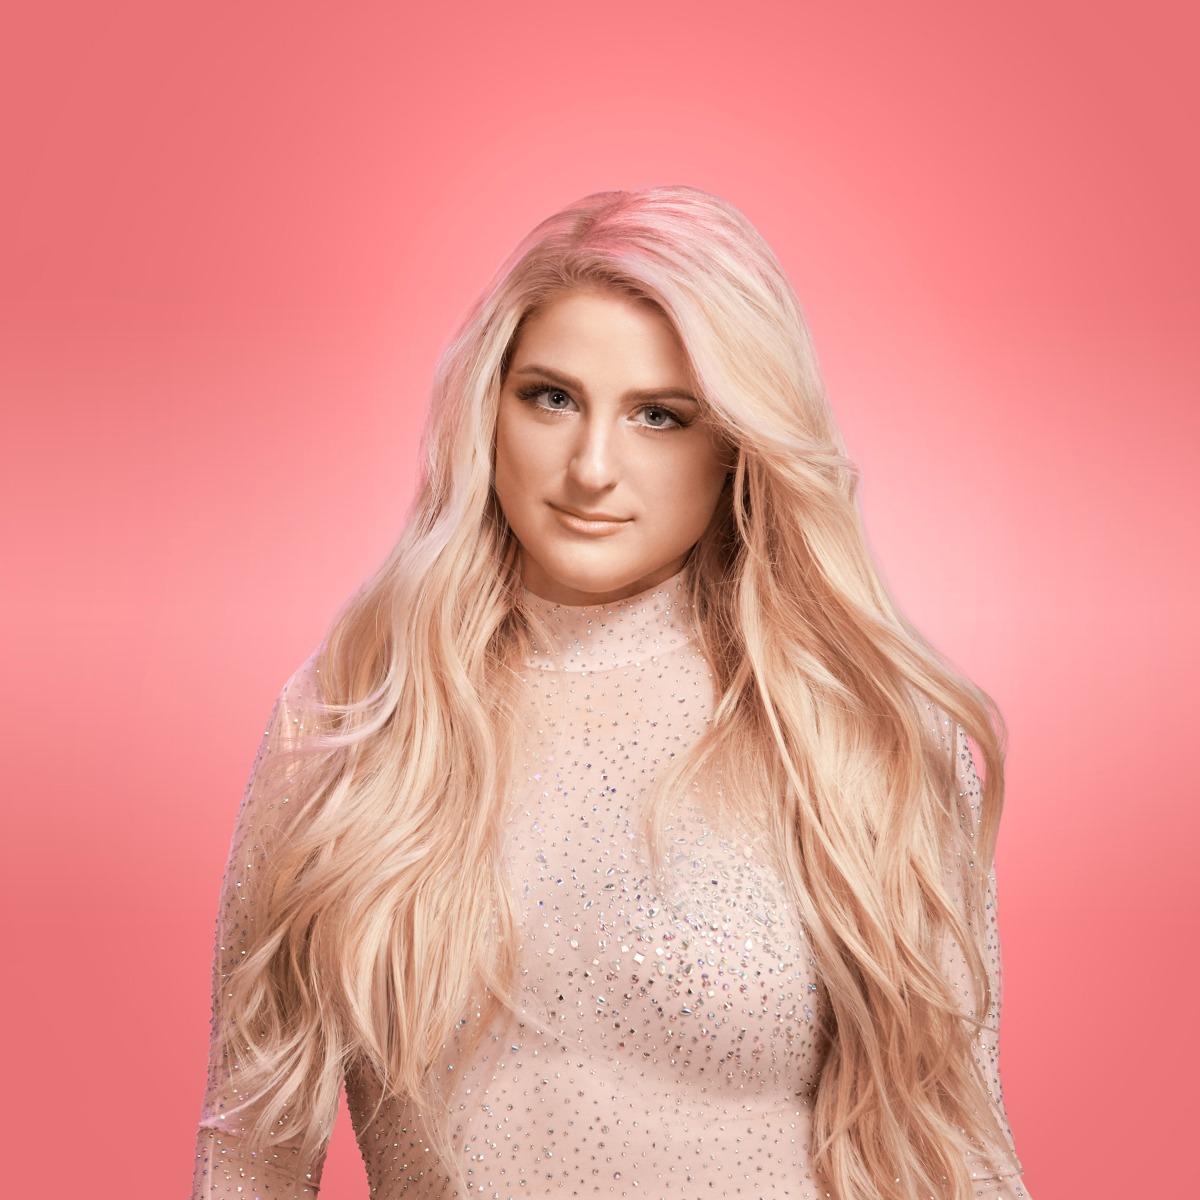 Meghan Trainor makes 'No Excuses' on polarising new track - Review